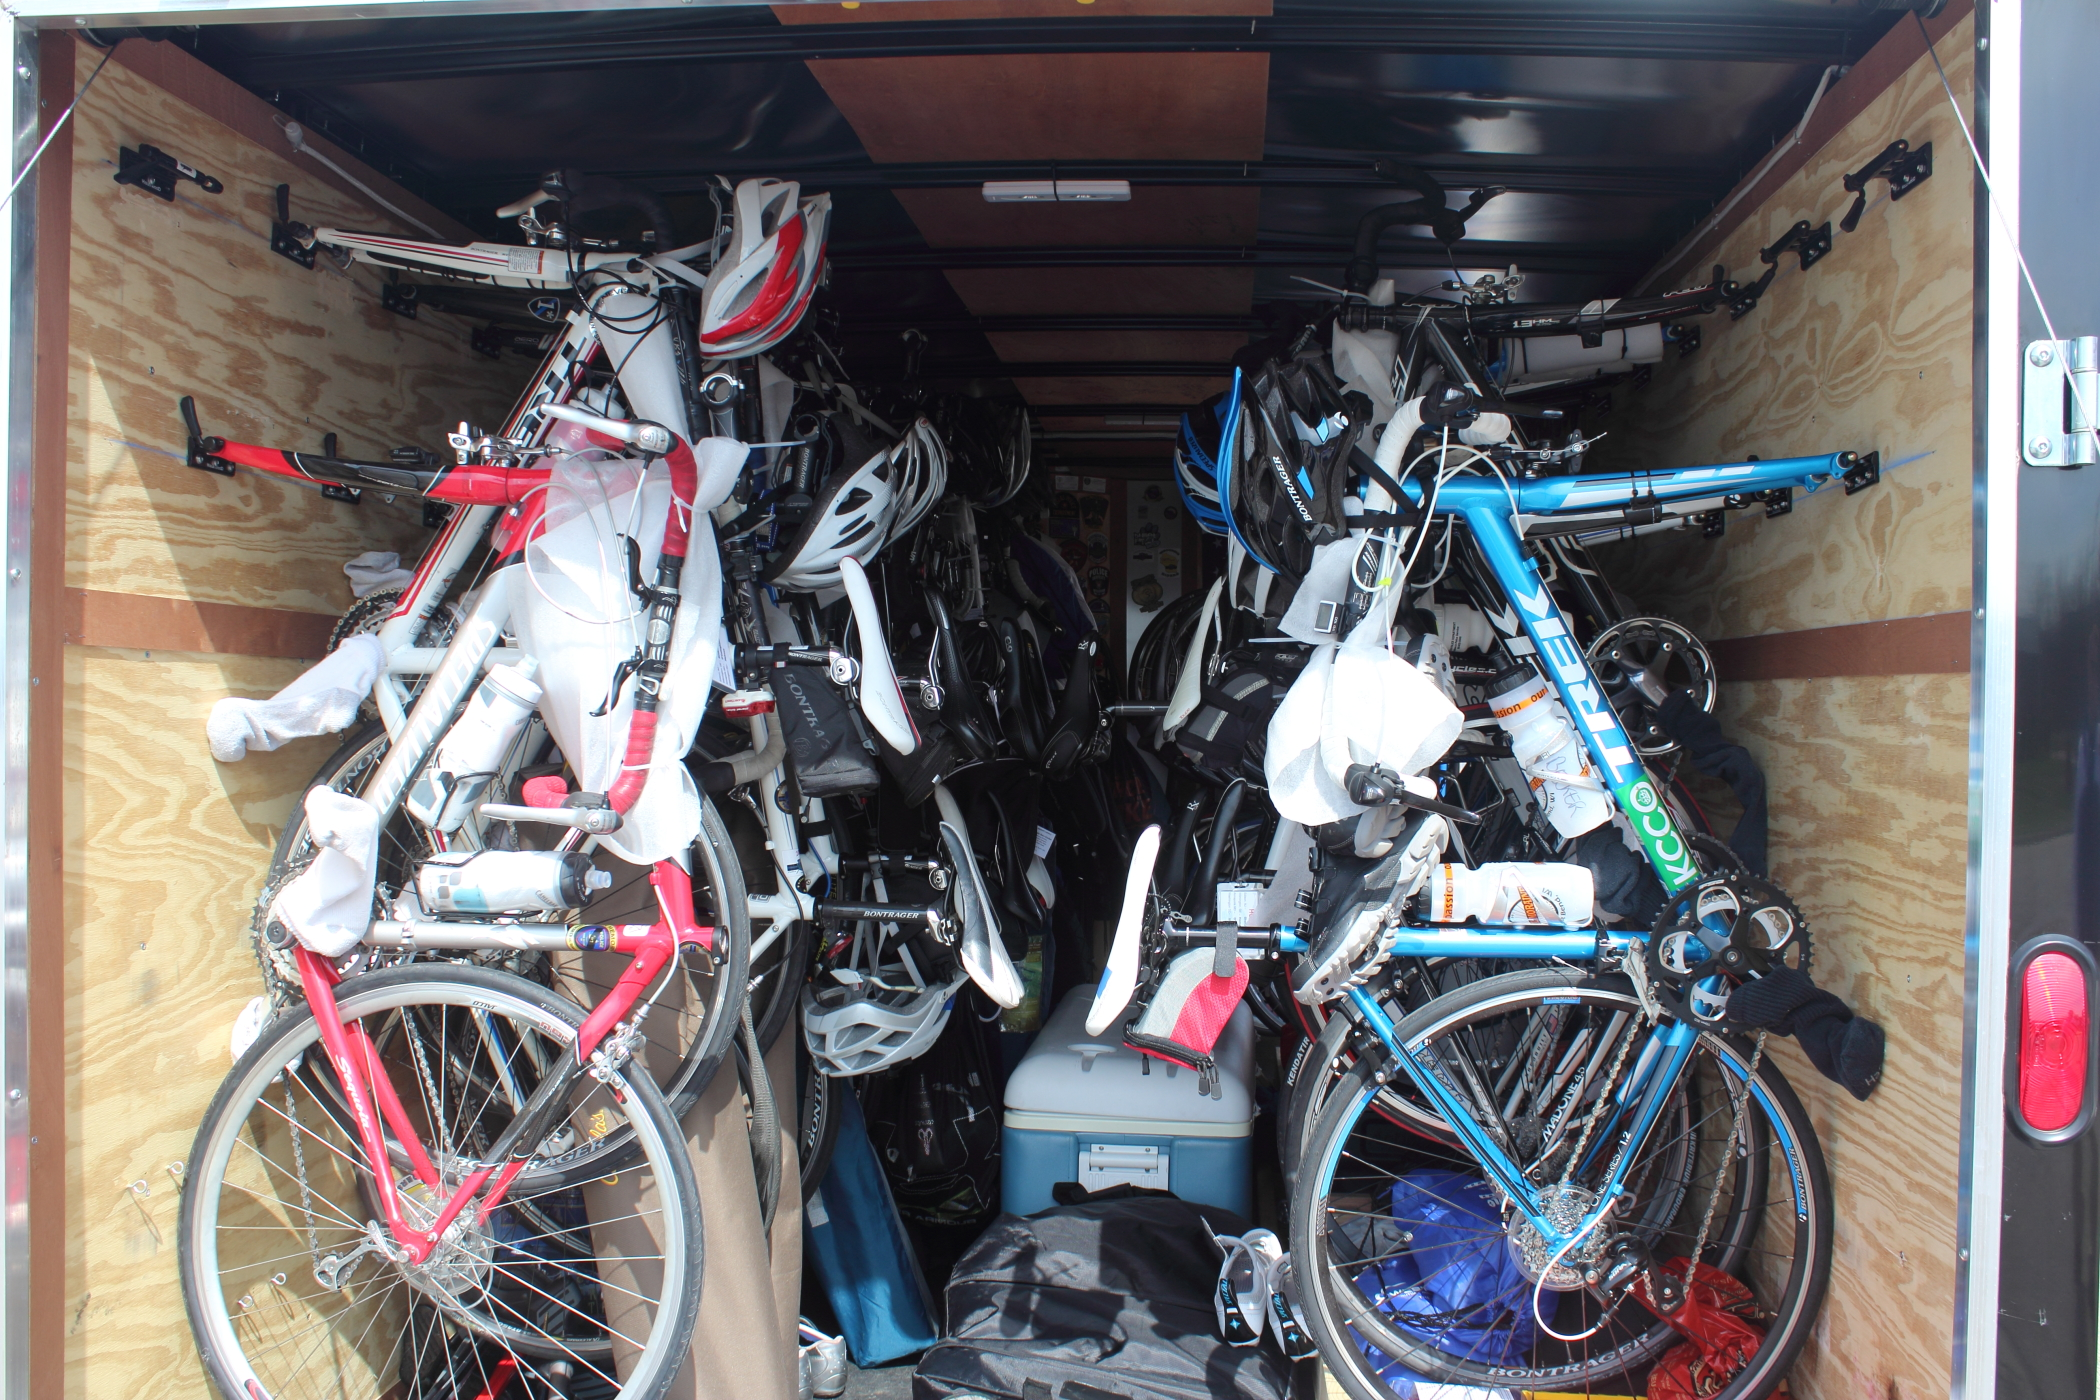 The bikes packed in the trailer and ready to head to New Jersey.